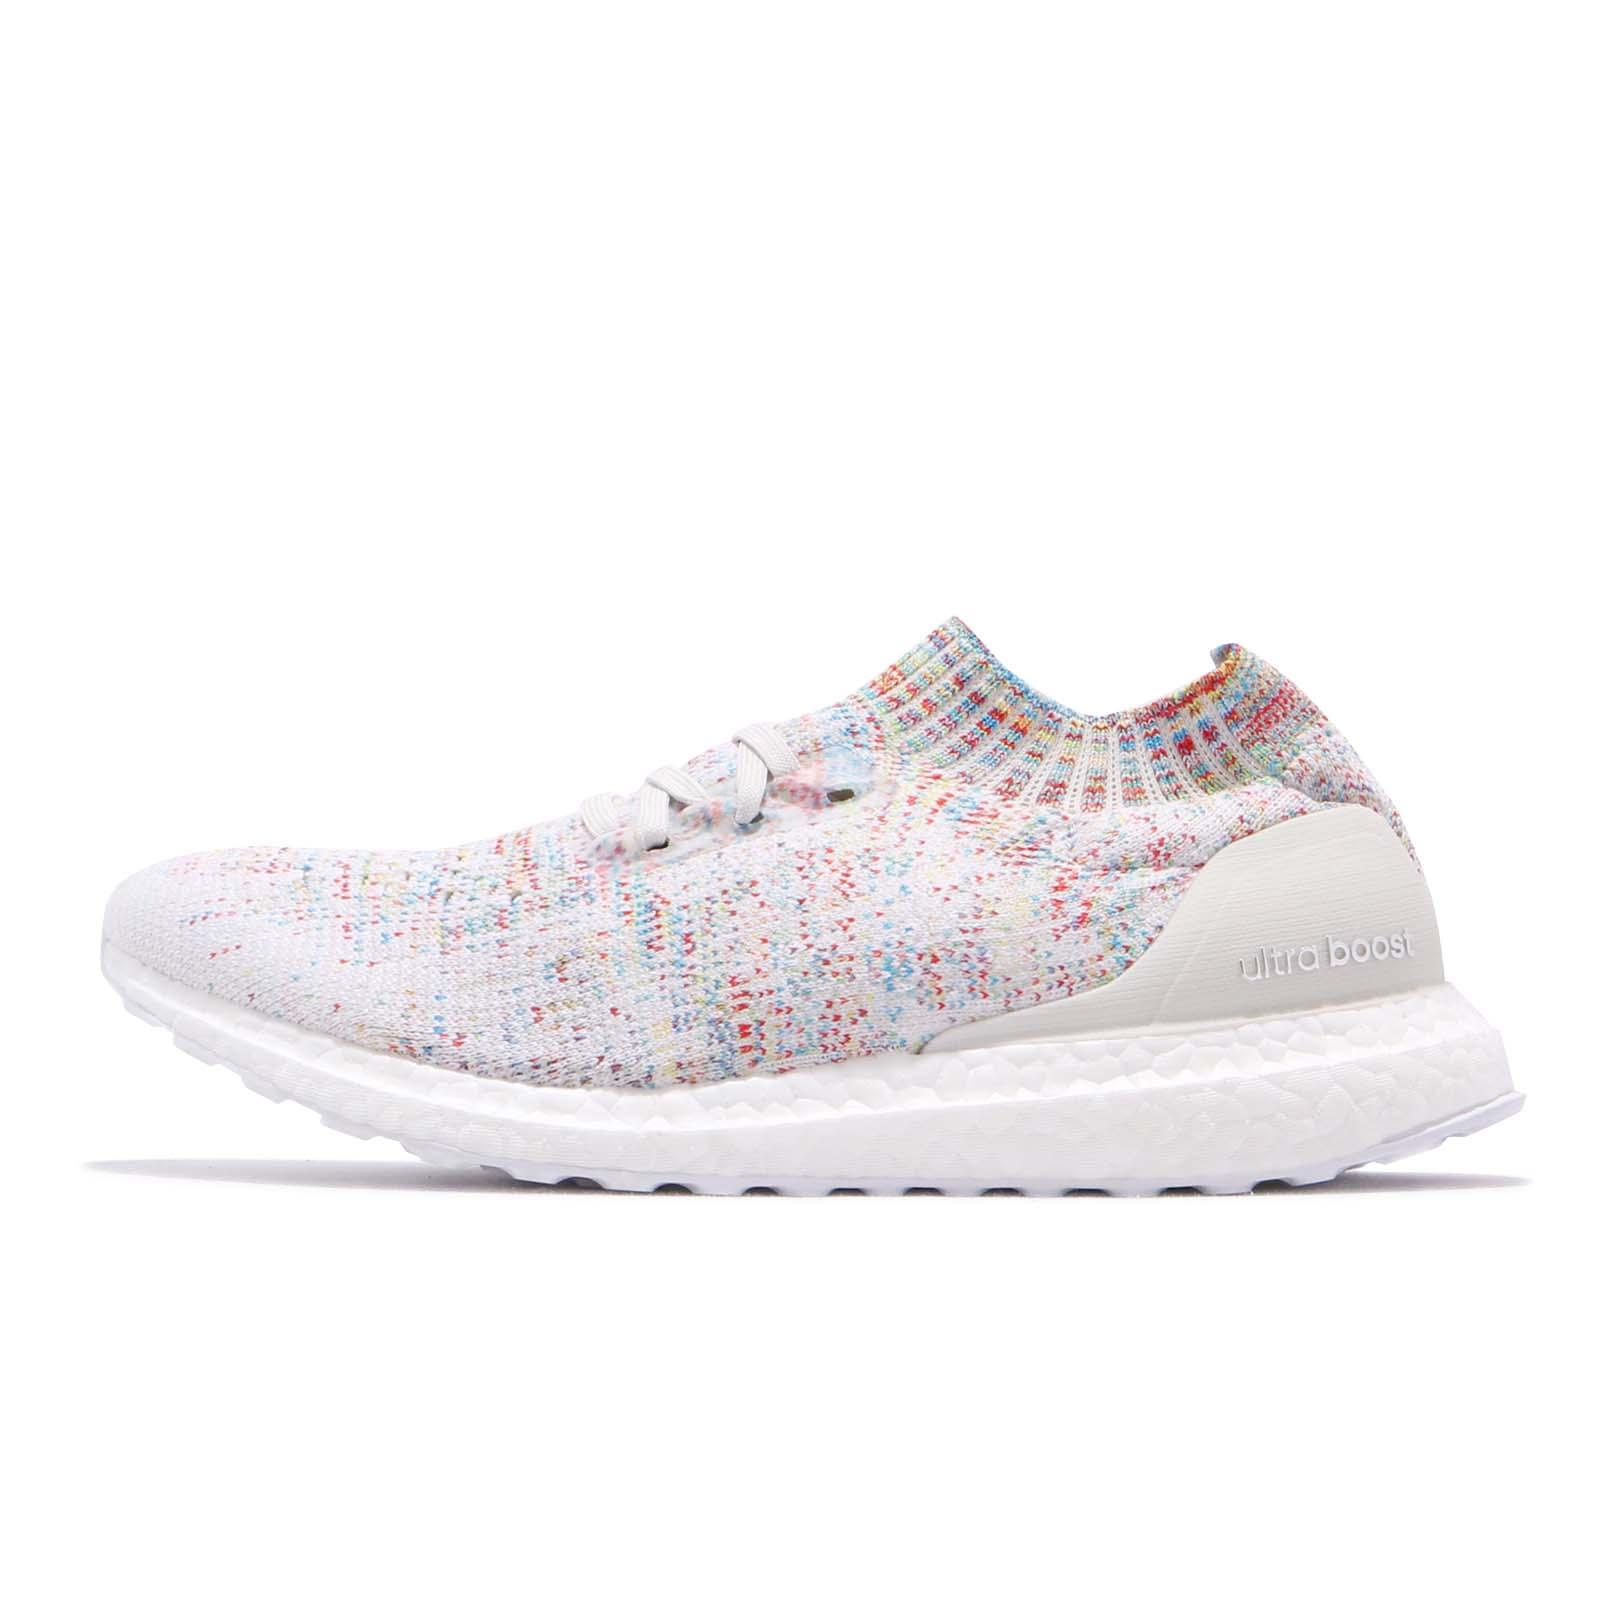 f486de9300a33 adidas UltraBOOST Uncaged White Shock Cyan Multi-Color Men Women Shoes  B37691